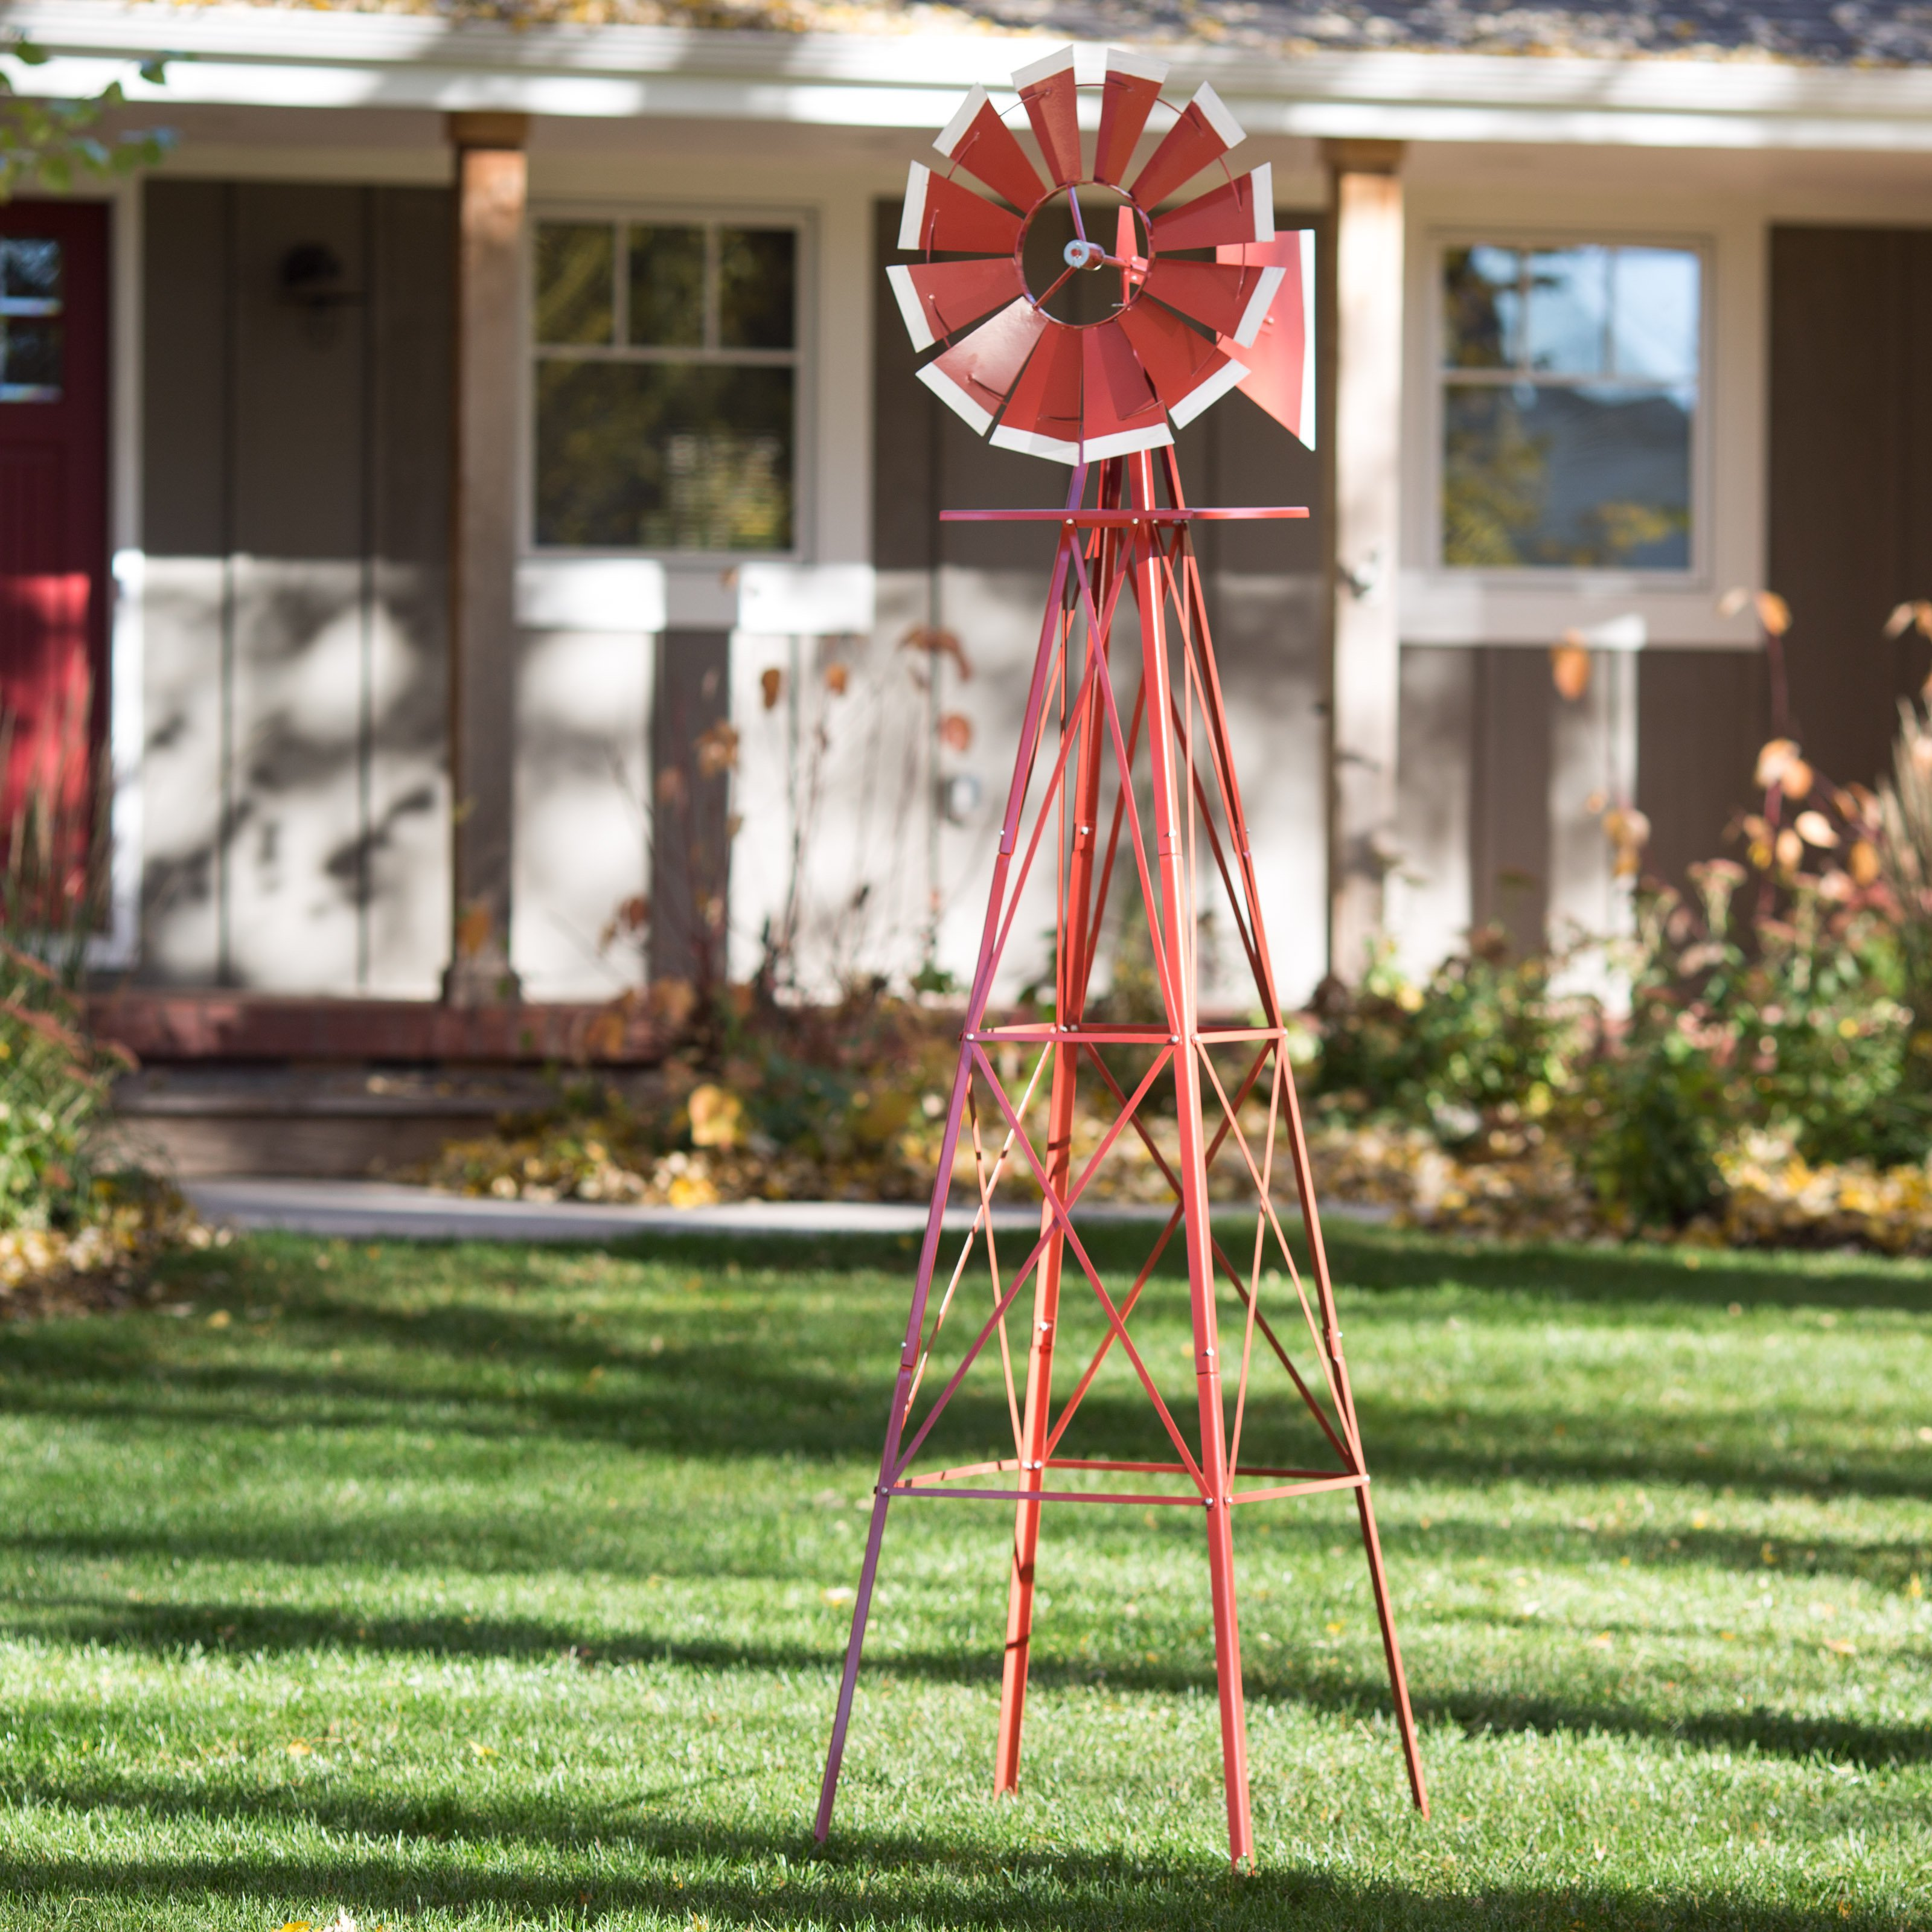 SMV Industries 8 ft. Windmill - Red and White